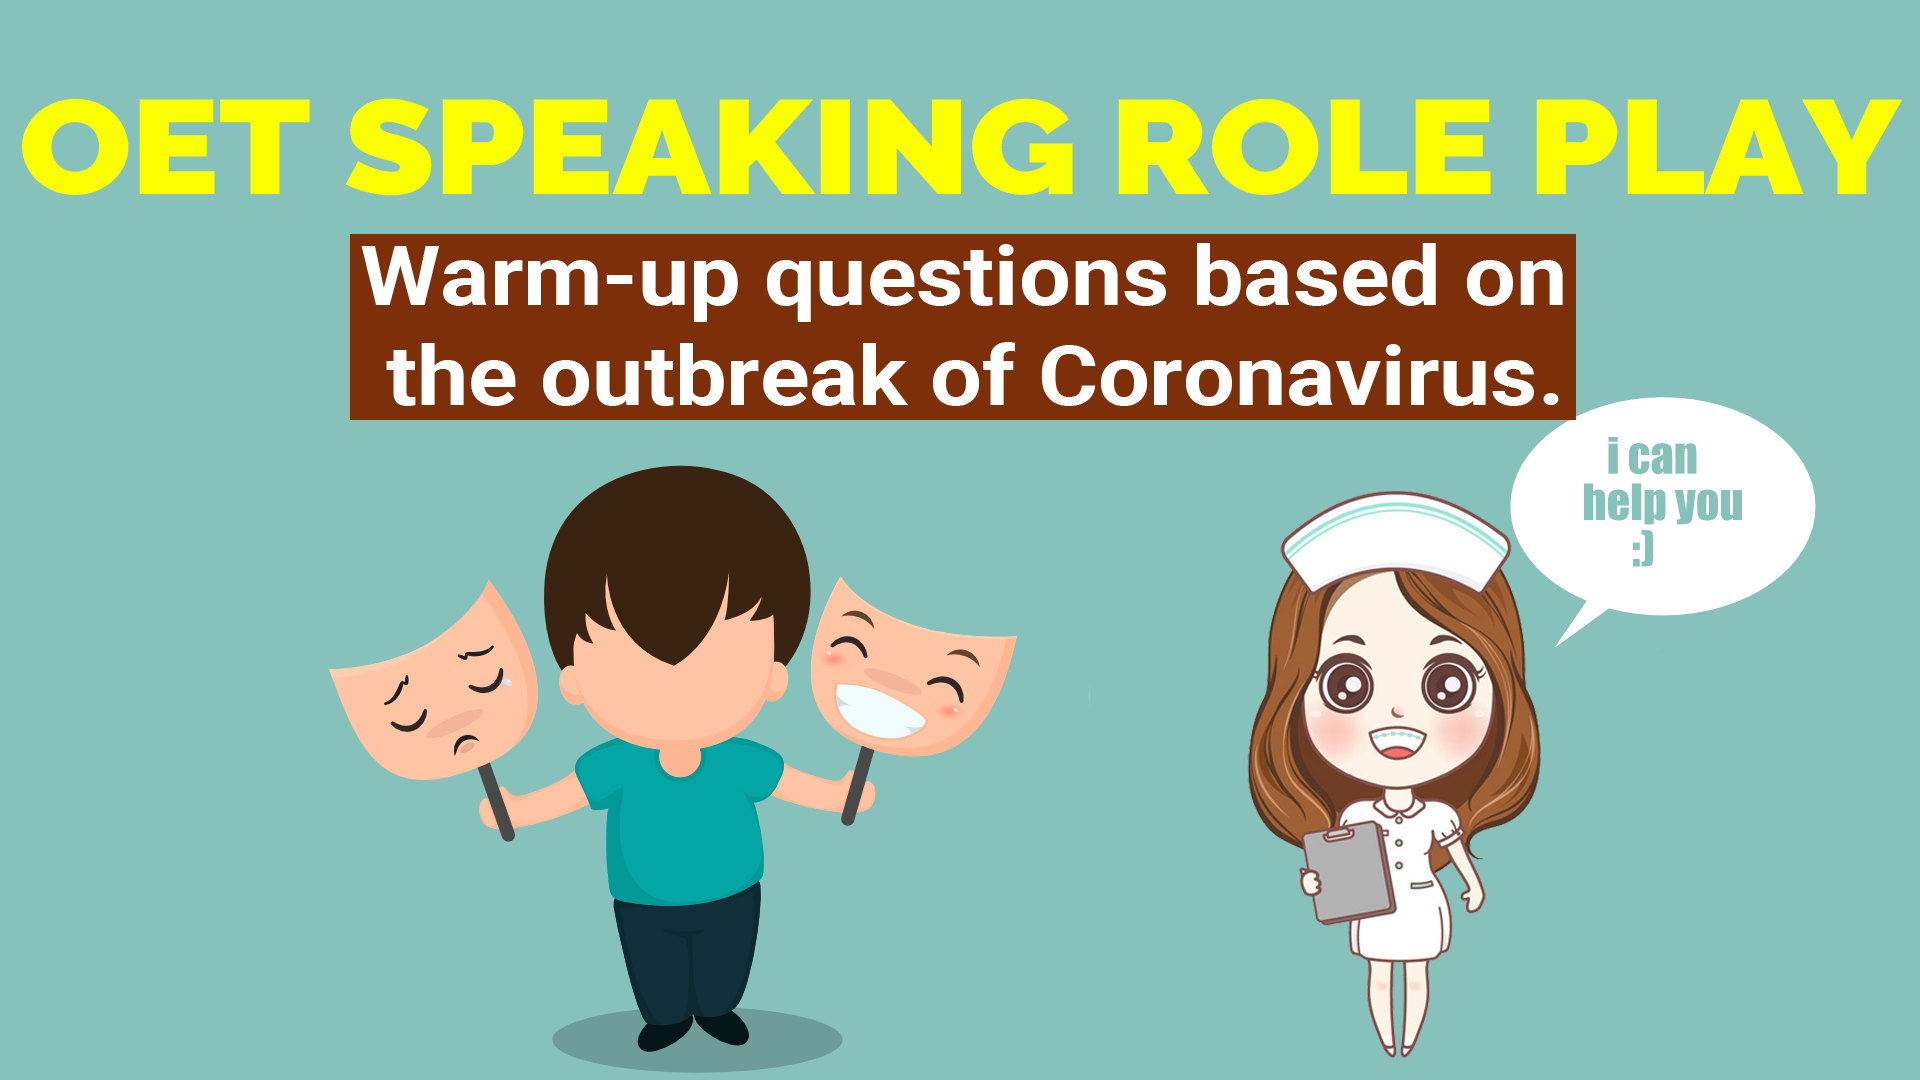 OET SPEAKING ROLE PLAY - BIPOLAR DISORDER - WARM UP QUESTIONS ON CORONAVIRUS